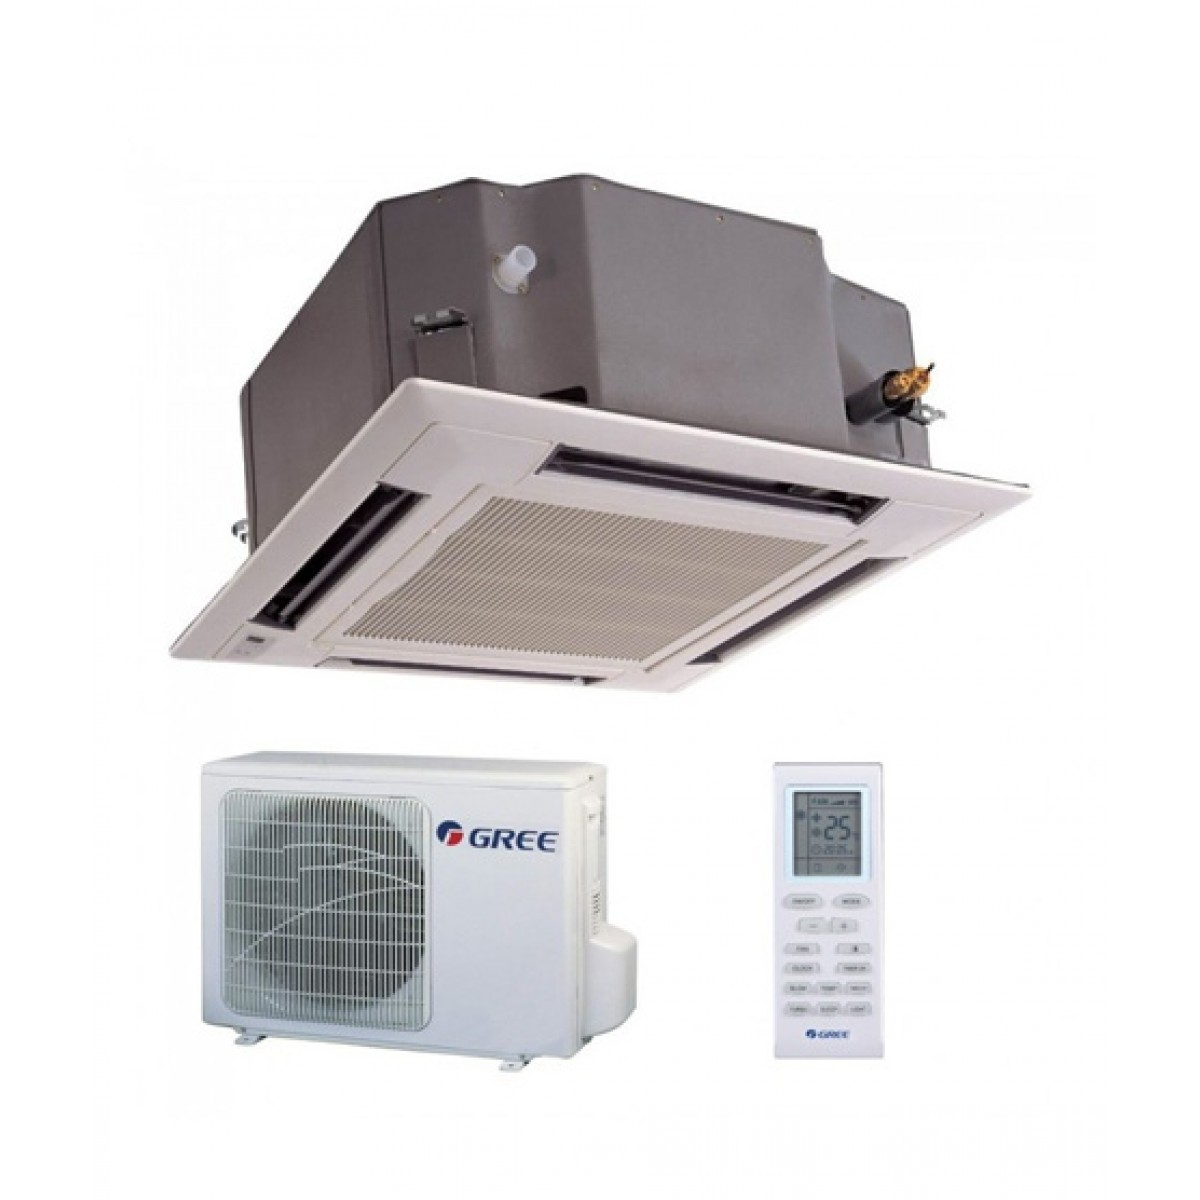 Reviews for Gree Ceiling Cassette Air Conditioner Price in